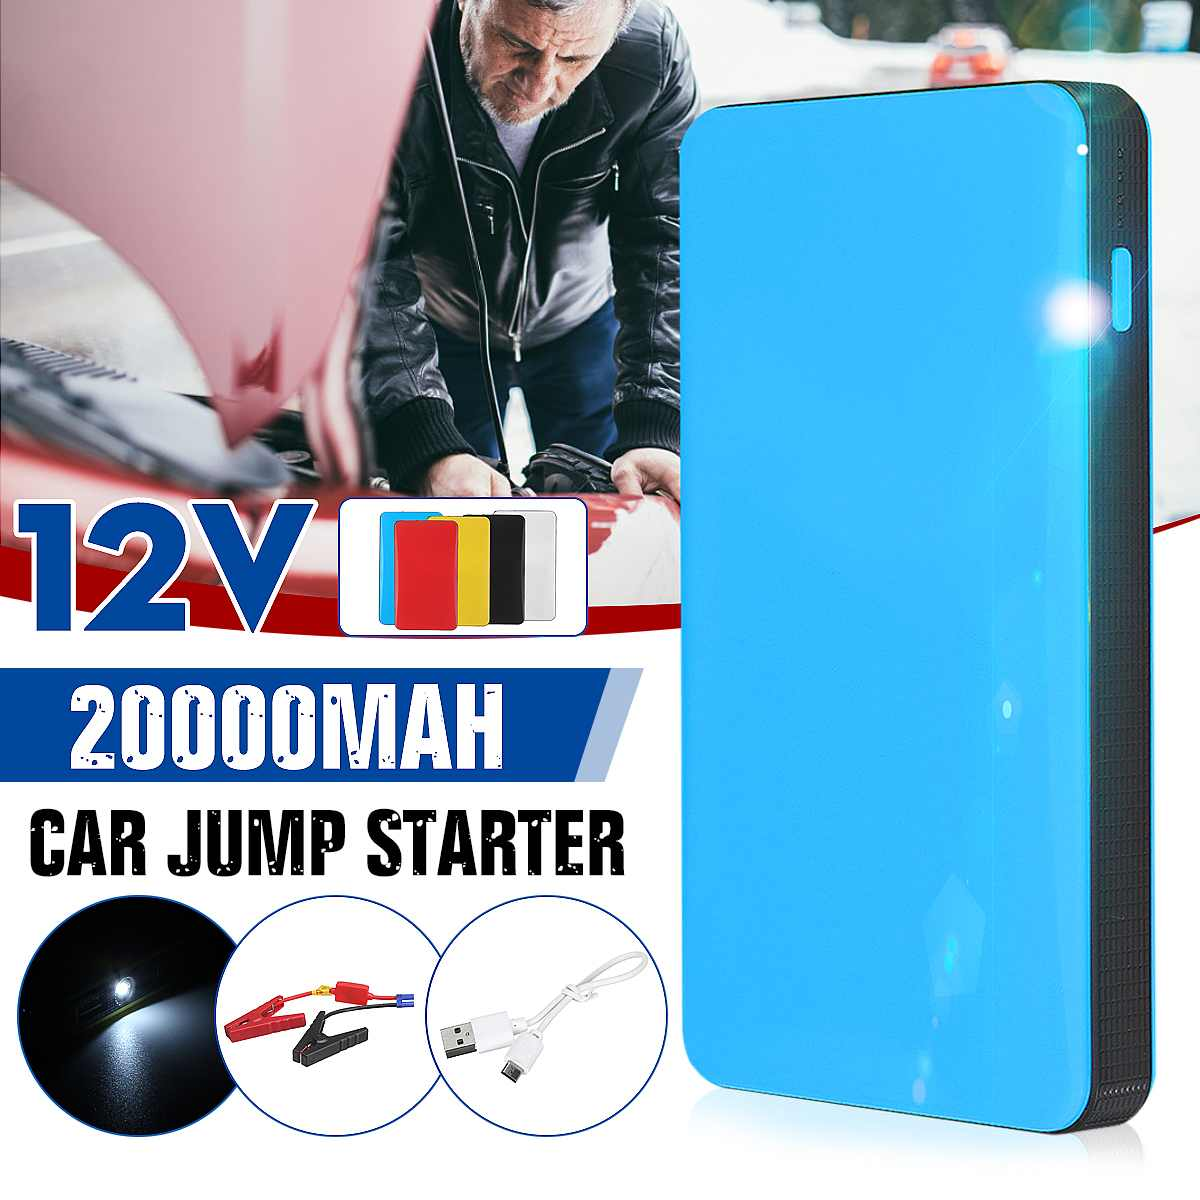 20000mAh 12V Car Jump Starter Power Bank Emergency Charger Booster Battery Portable Car Battery Booster Buster Starting Device